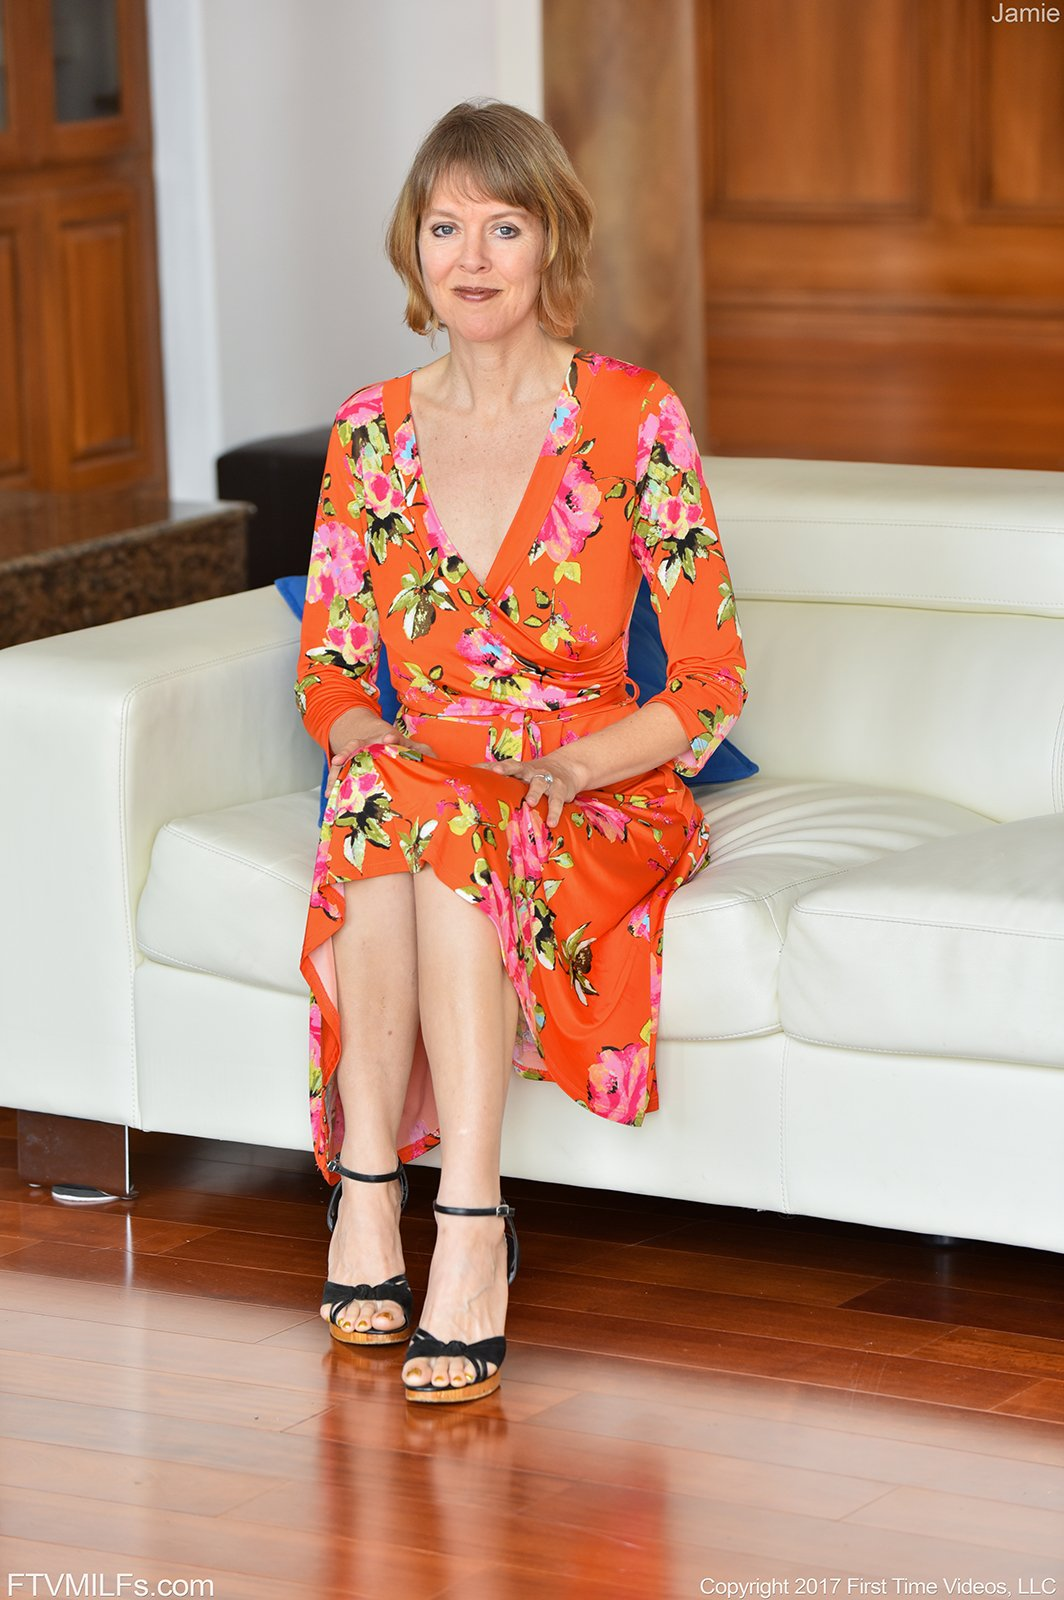 Short-haired MILF in high heels presenting her middle-aged